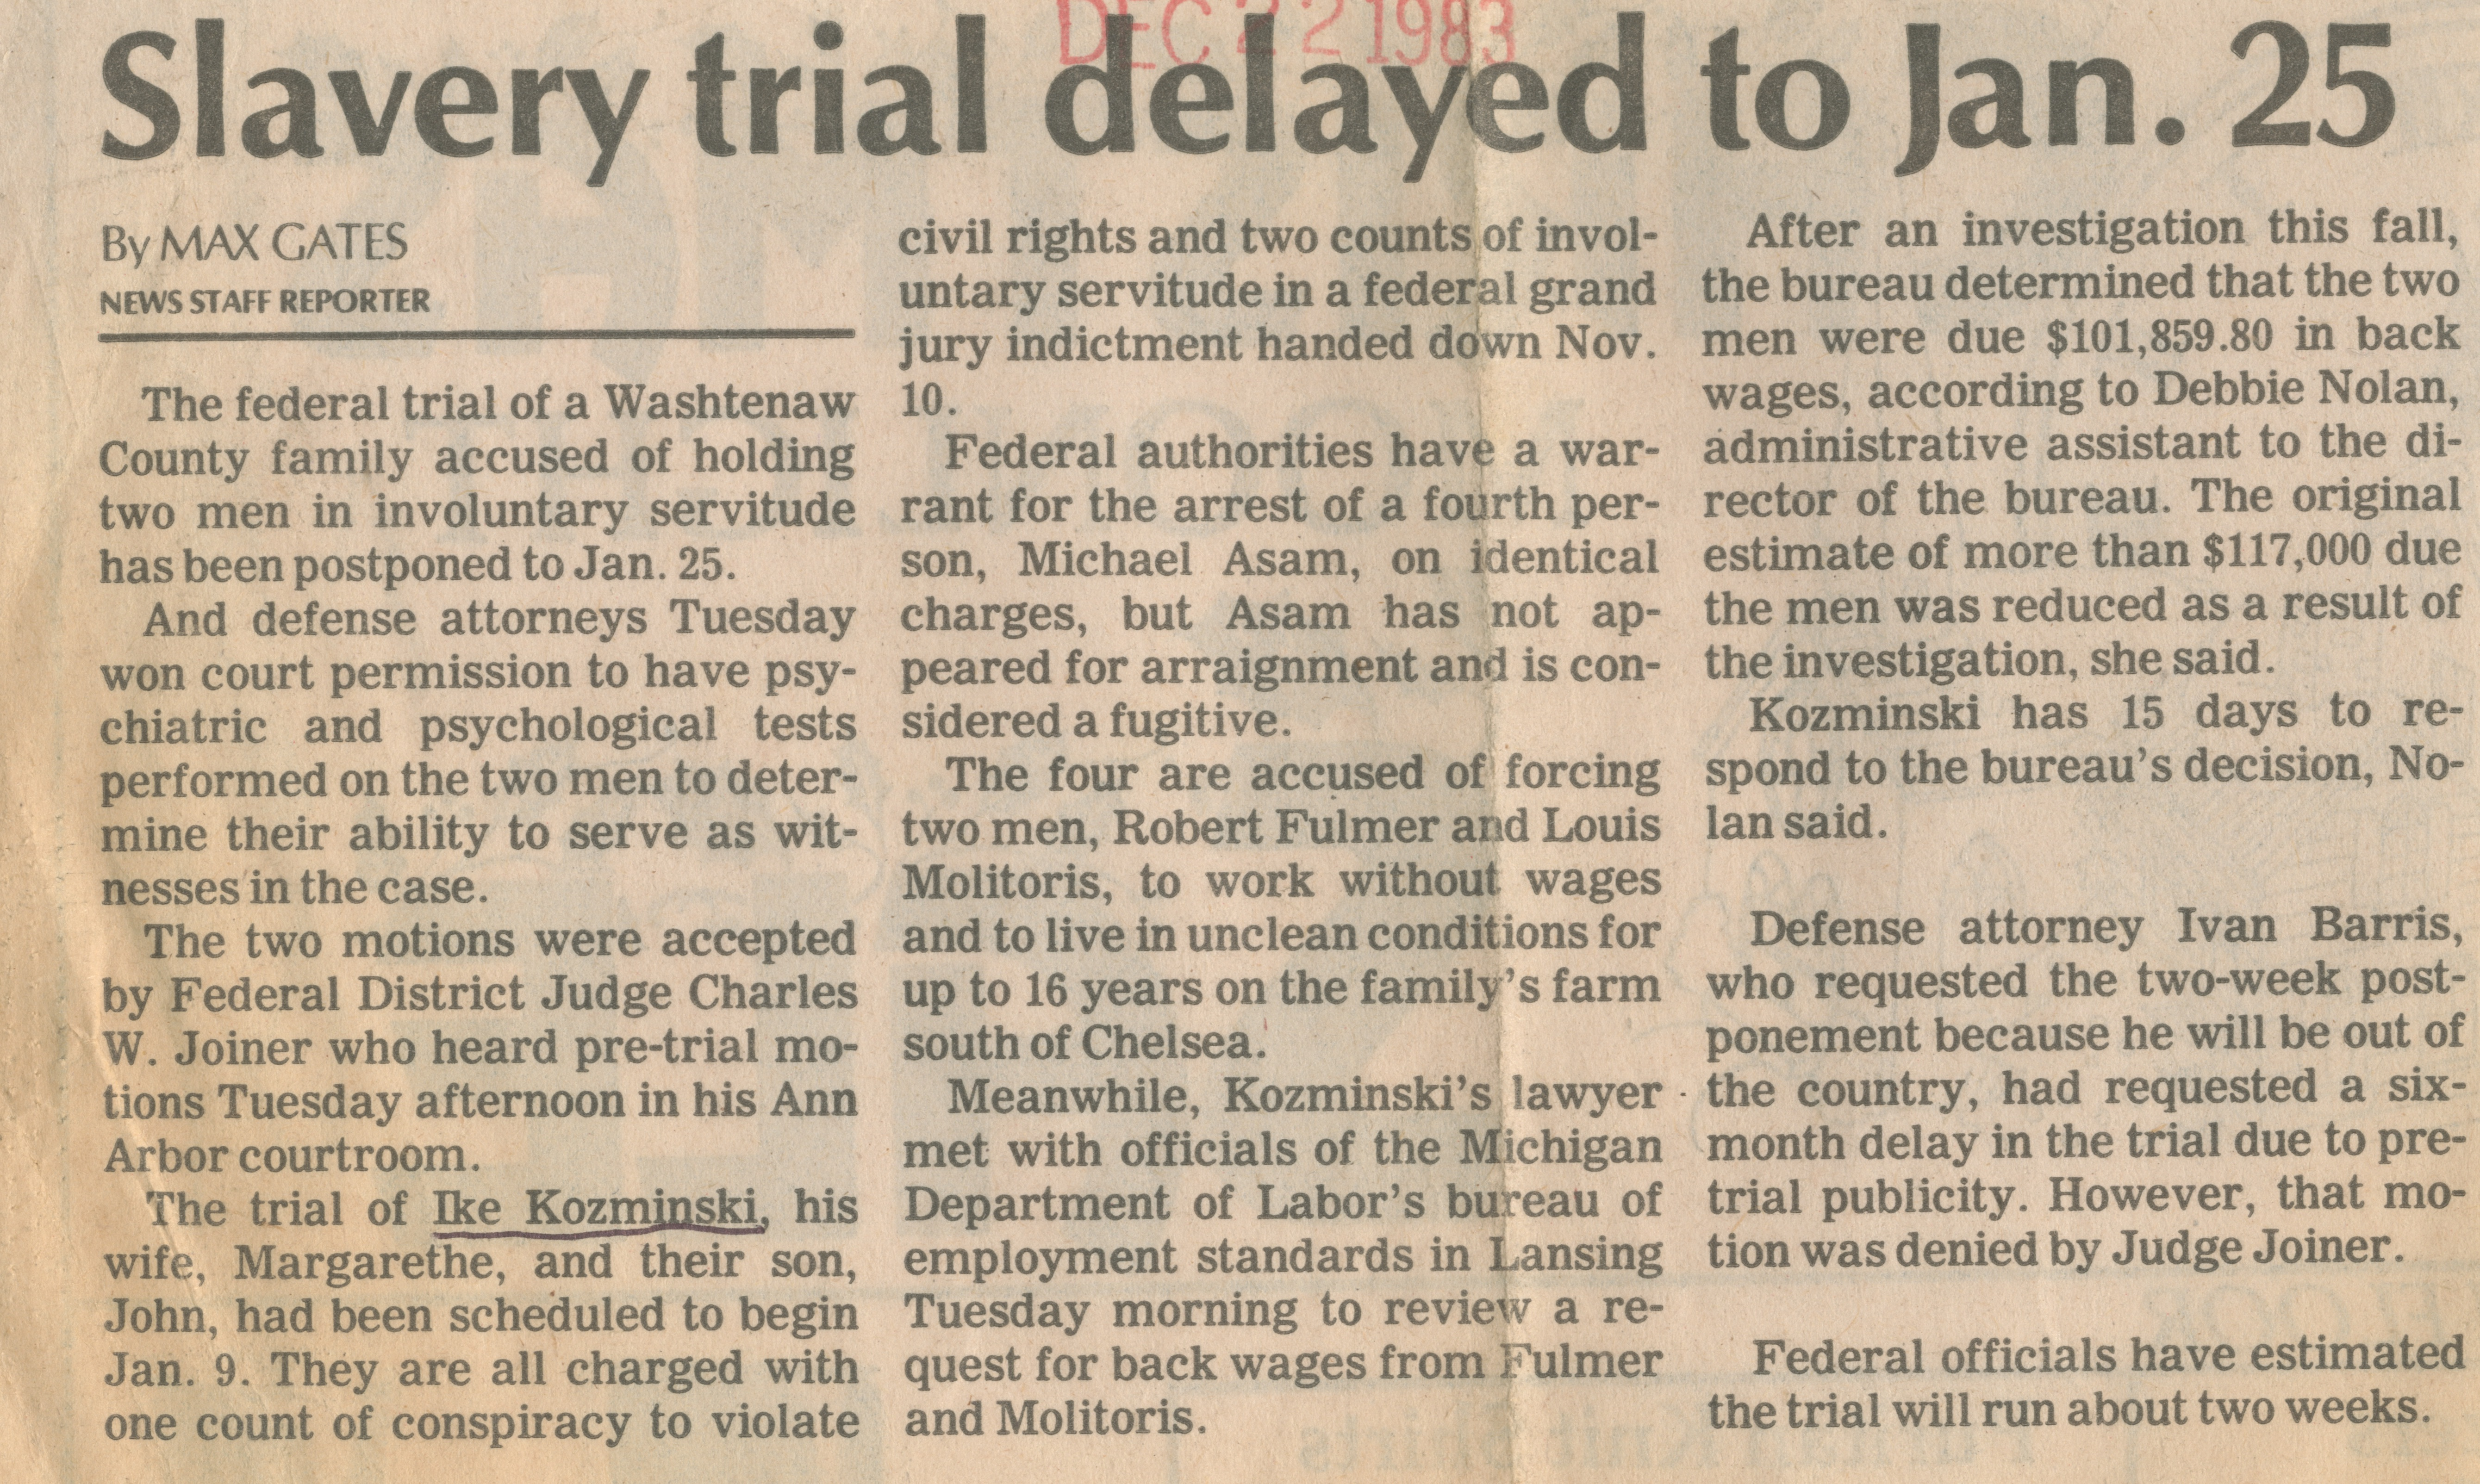 Slavery trial delayed to Jan. 25 image